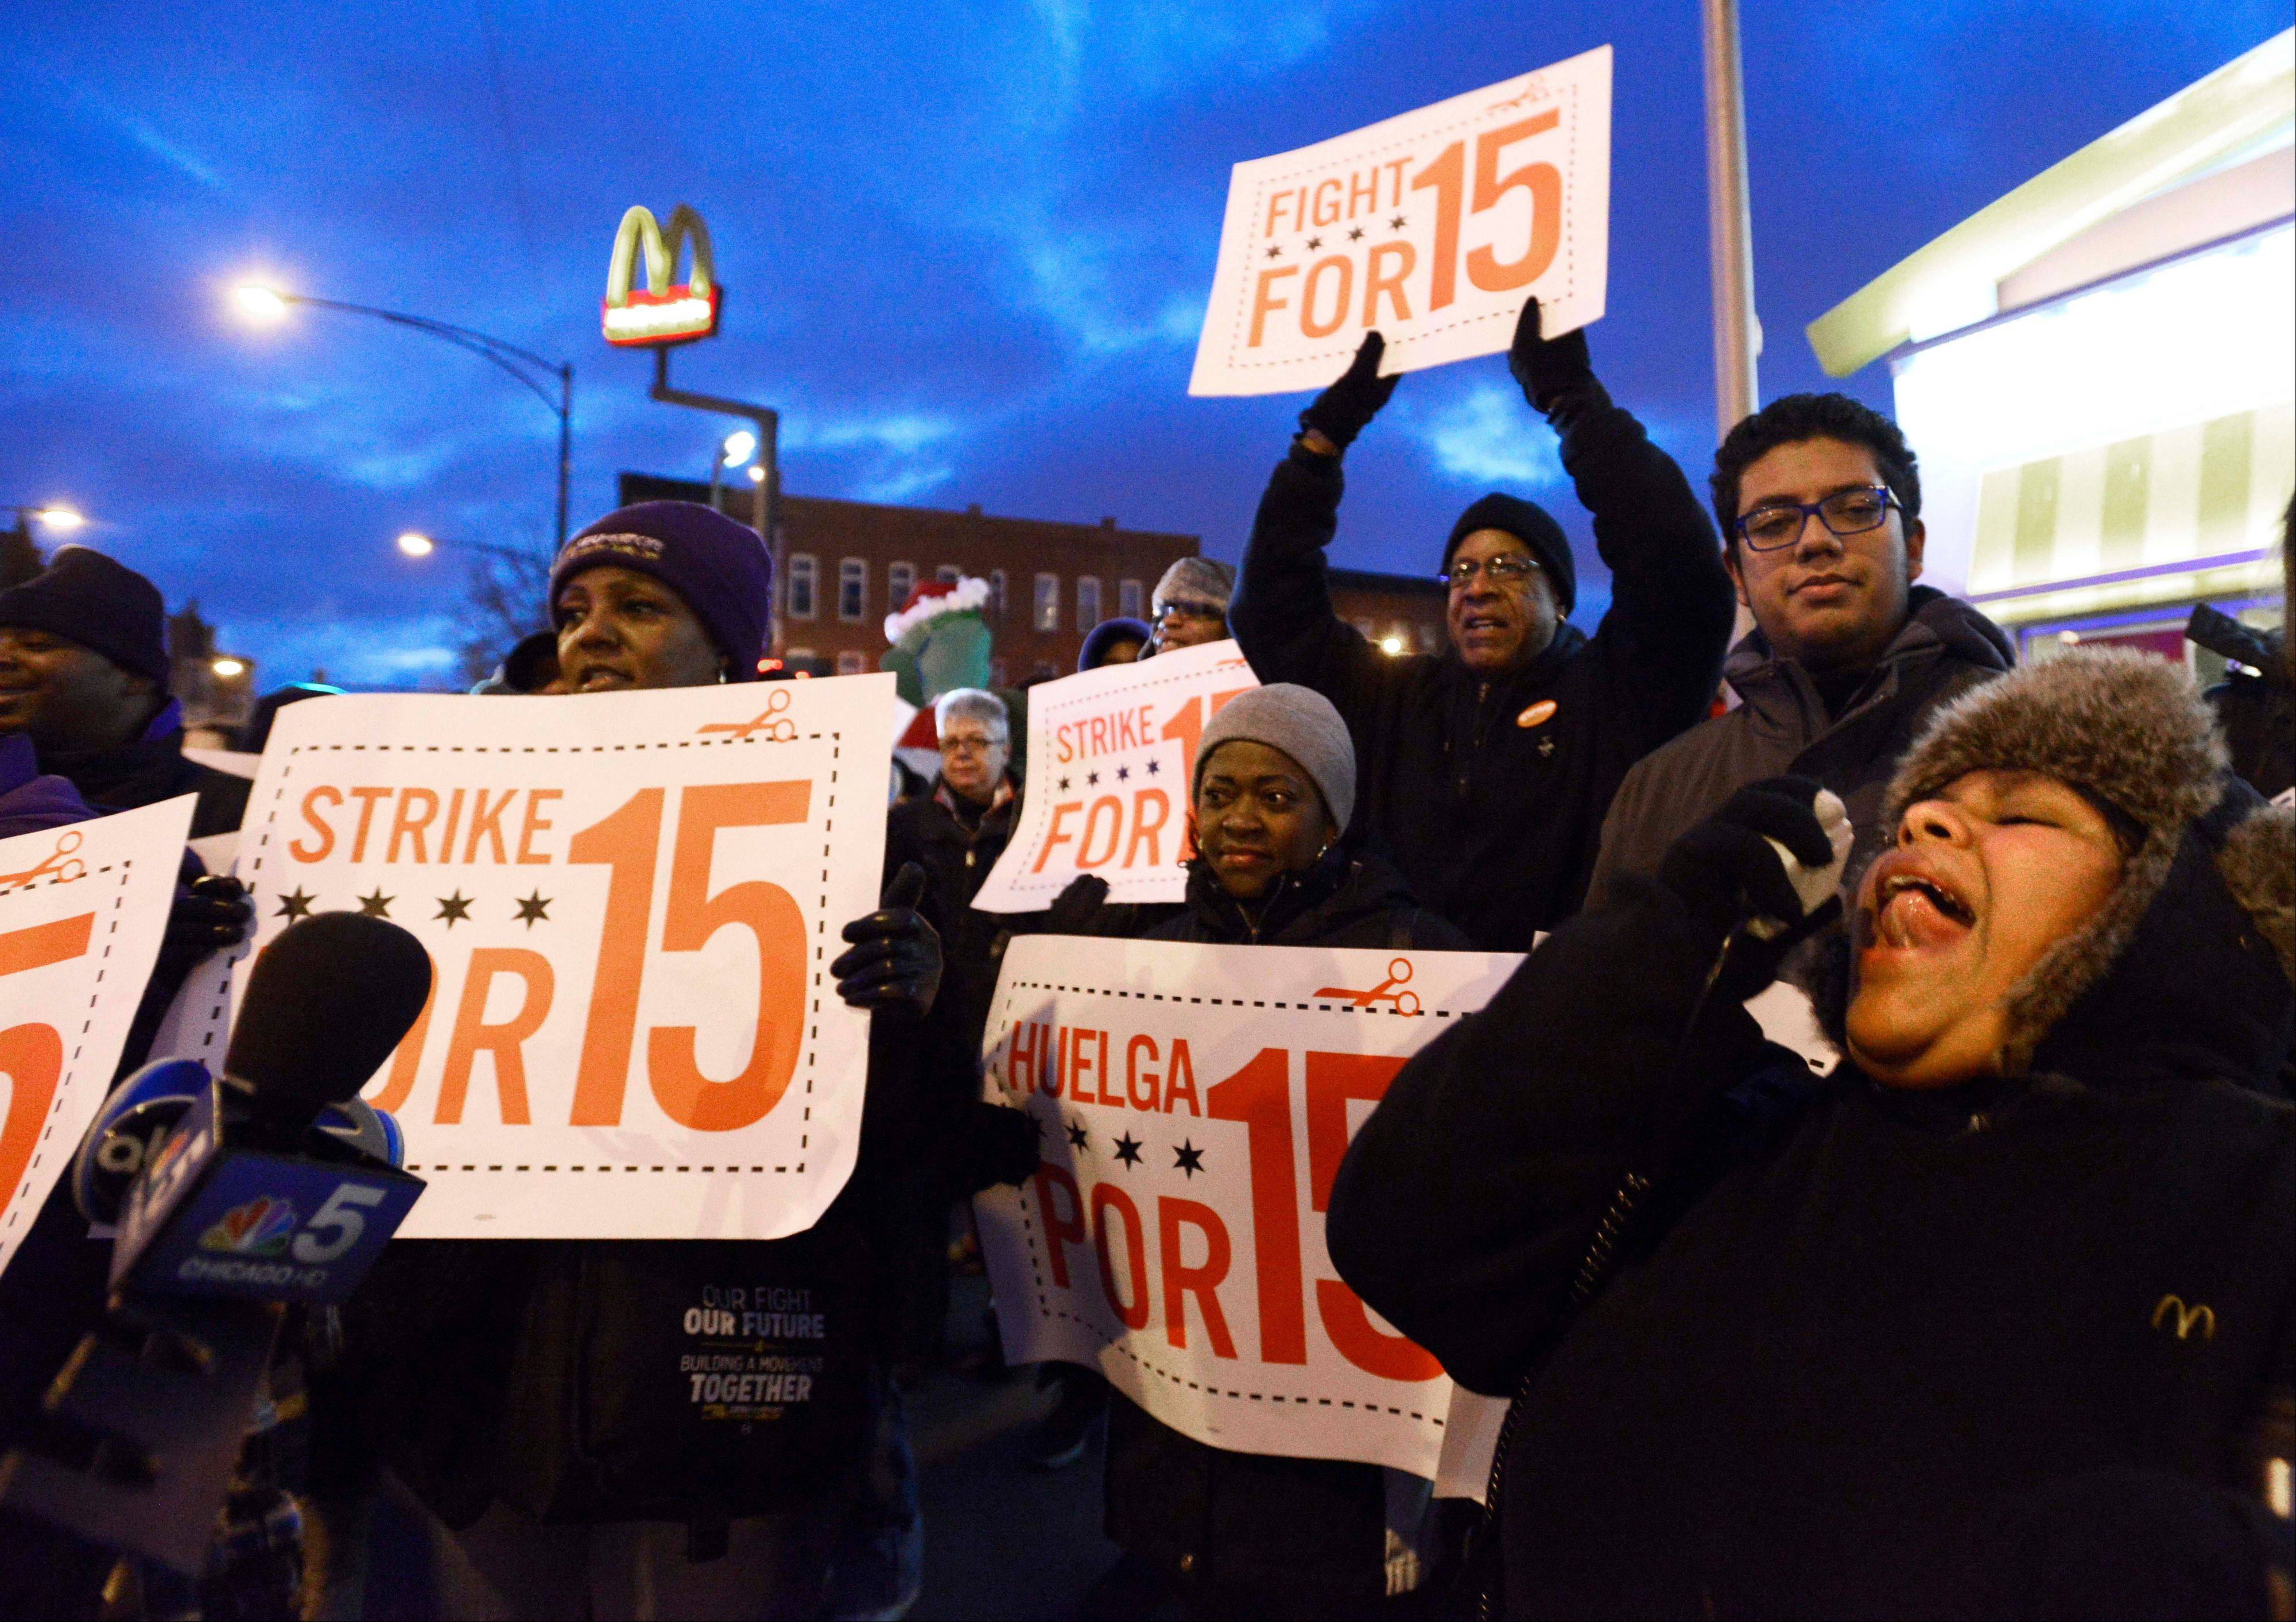 Demonstrators rally for better wages outside a McDonalds in Chicago Thursday, when fast-food workers and labor organizers turned out in support of higher wages in cities across the country.